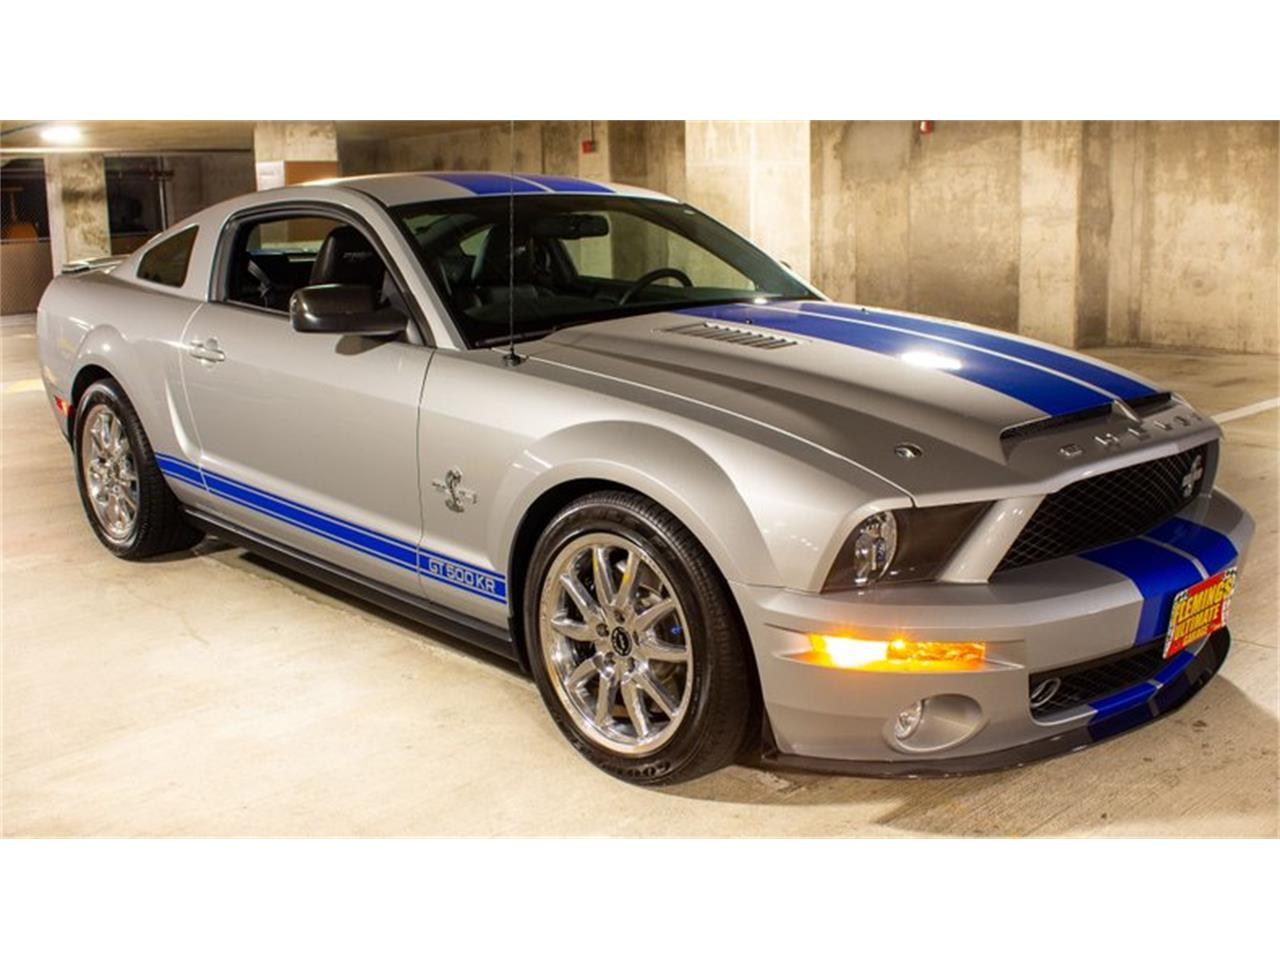 2008 Shelby GT500 for sale in Rockville, MD – photo 7